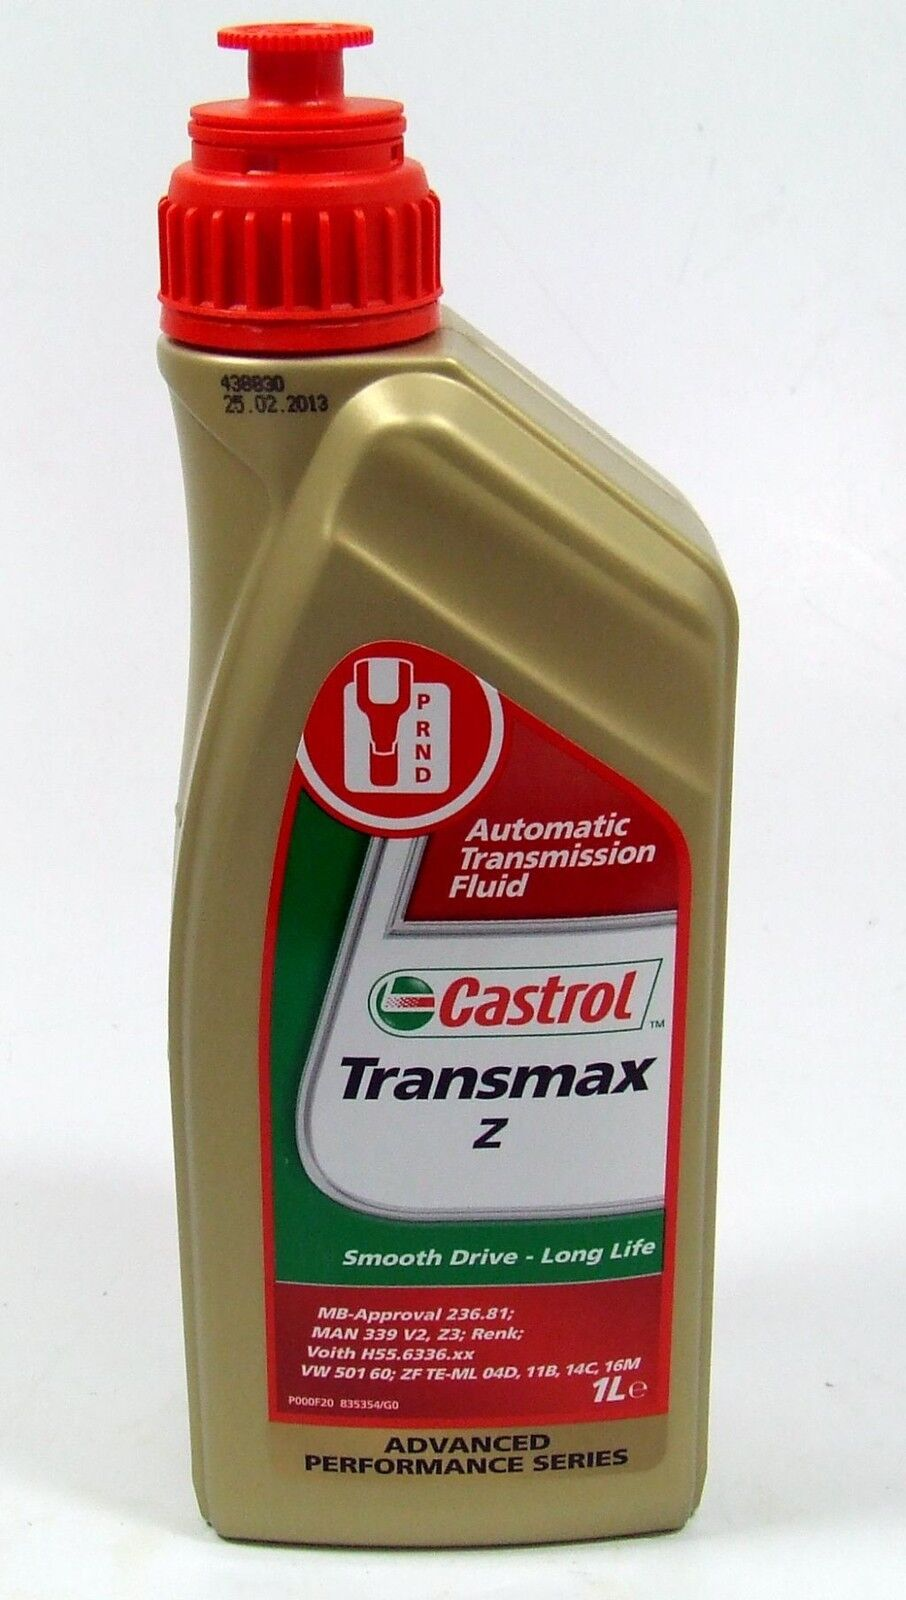 castrol transmax z 1 ltr empfehlung nissan matic fluid. Black Bedroom Furniture Sets. Home Design Ideas